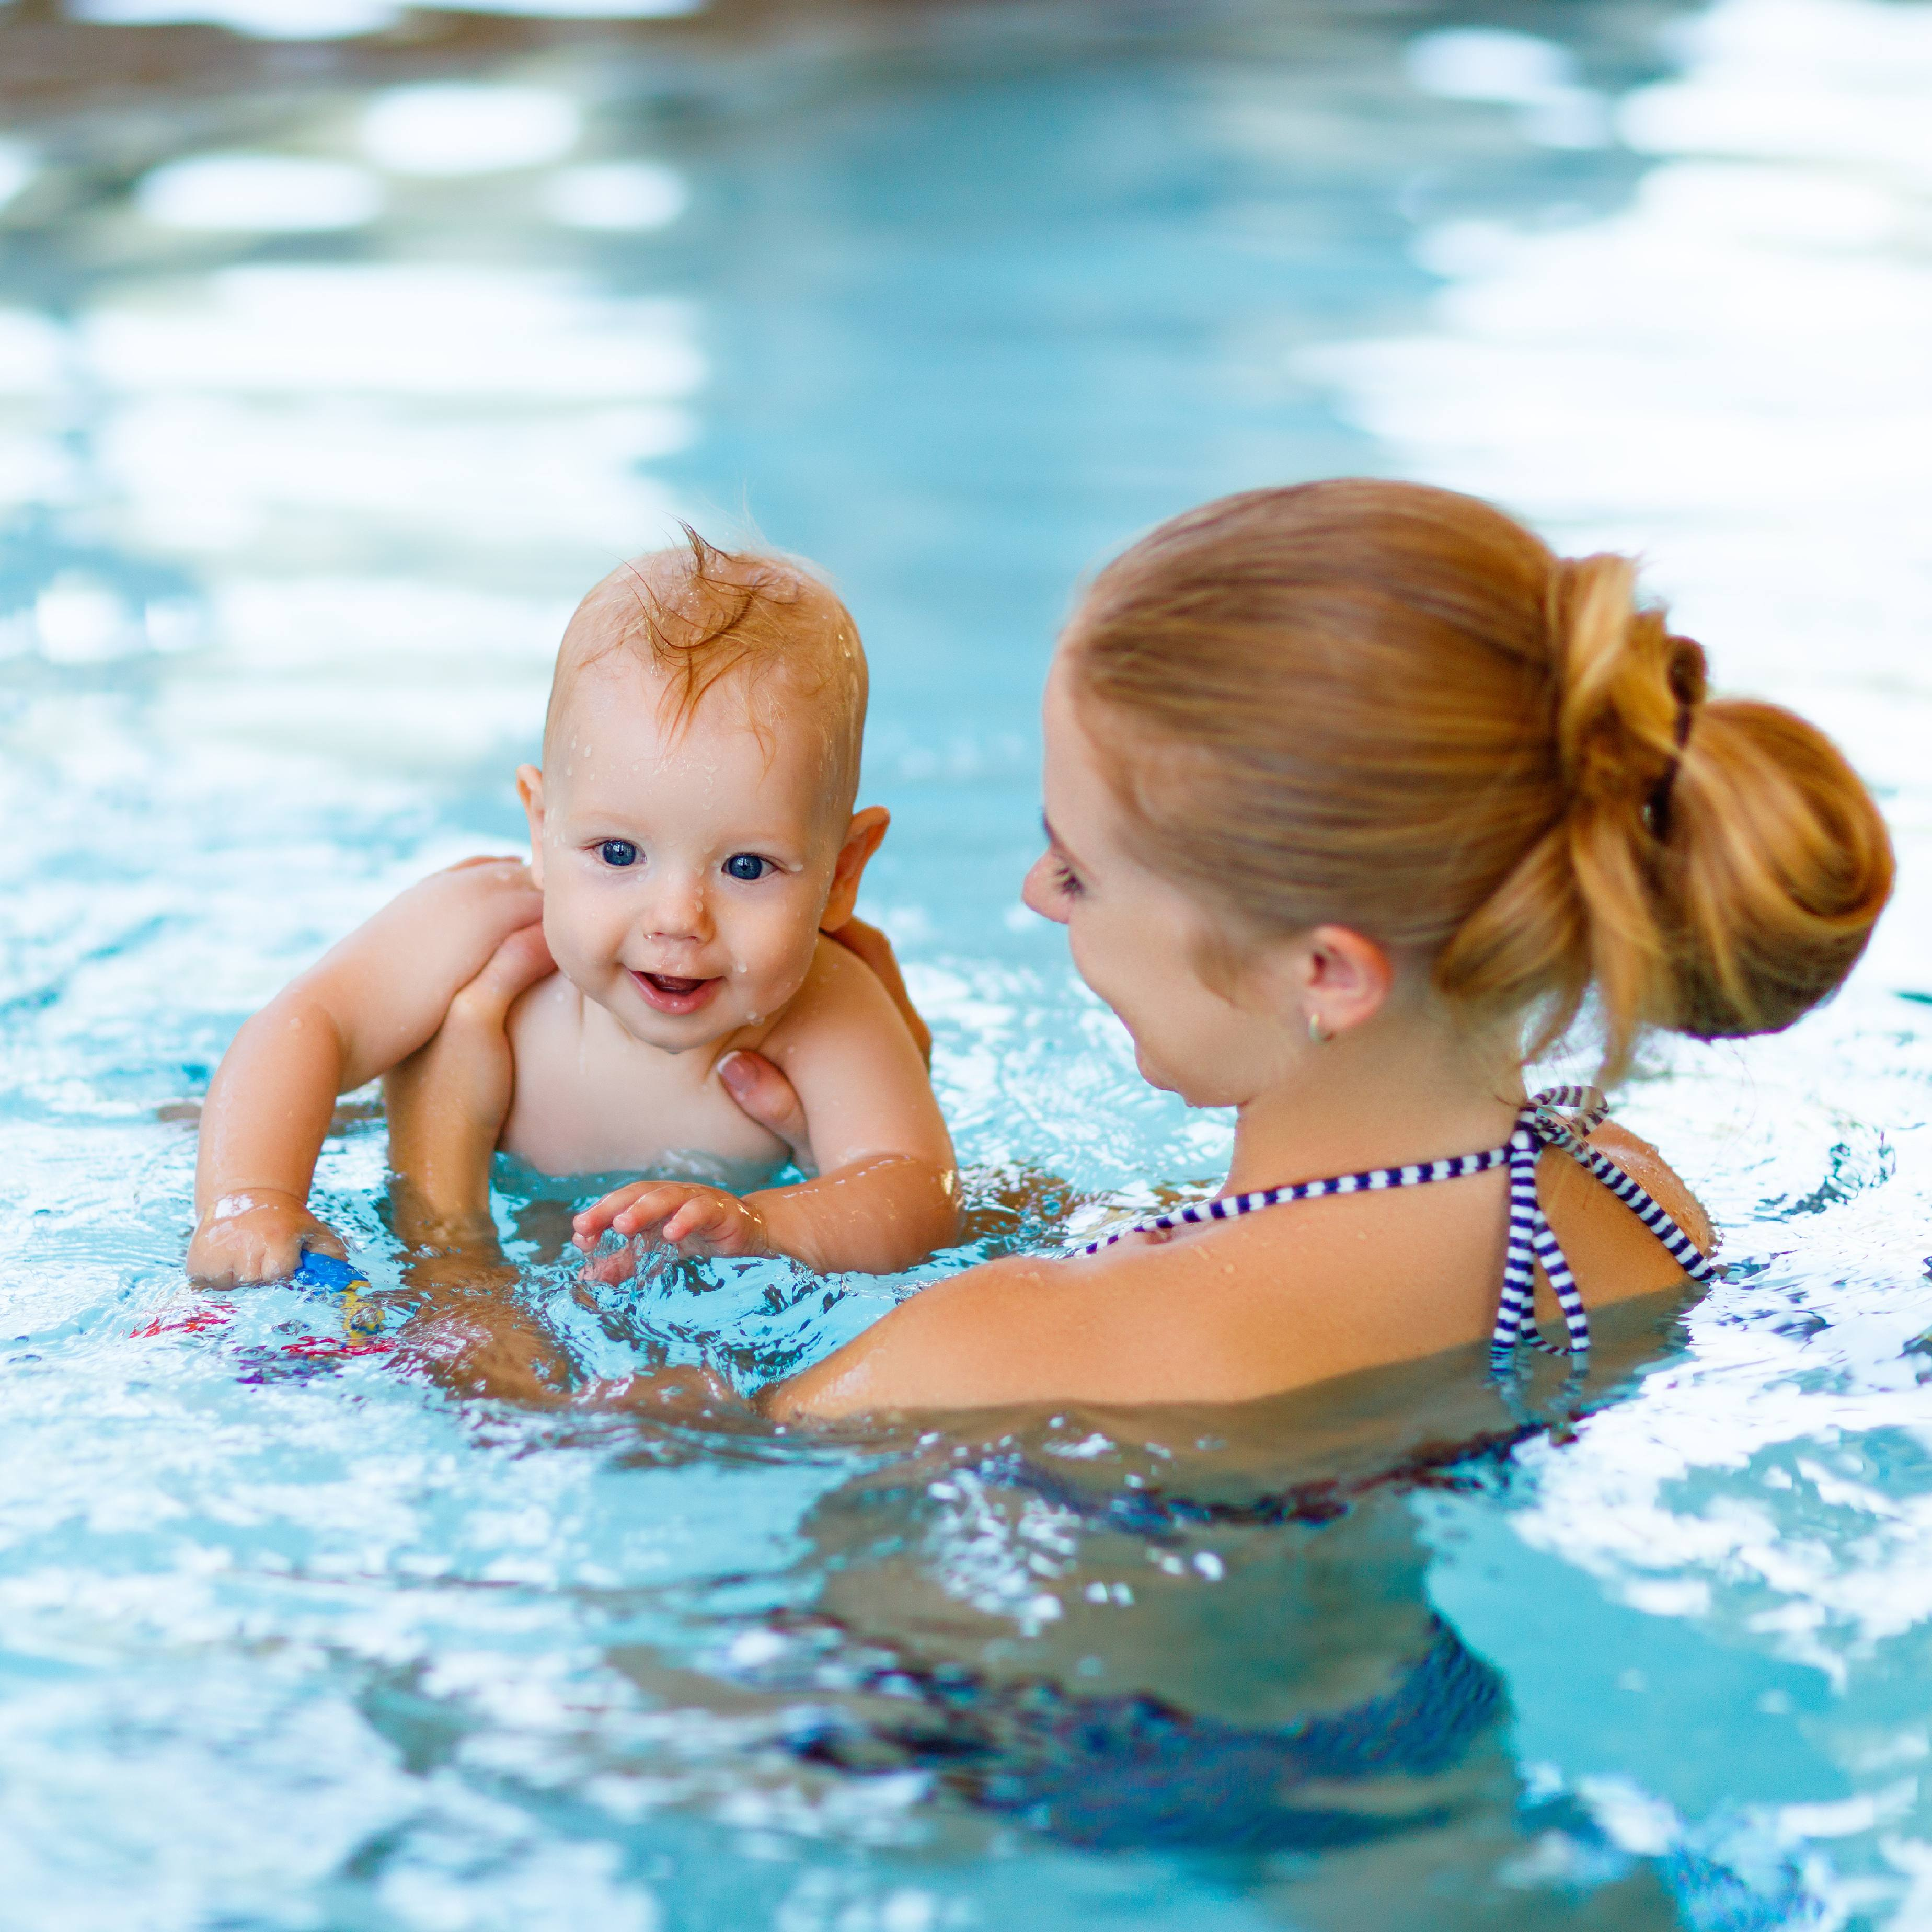 a young white woman in a swimming pool holding a smiling white baby in the water, learning to swim